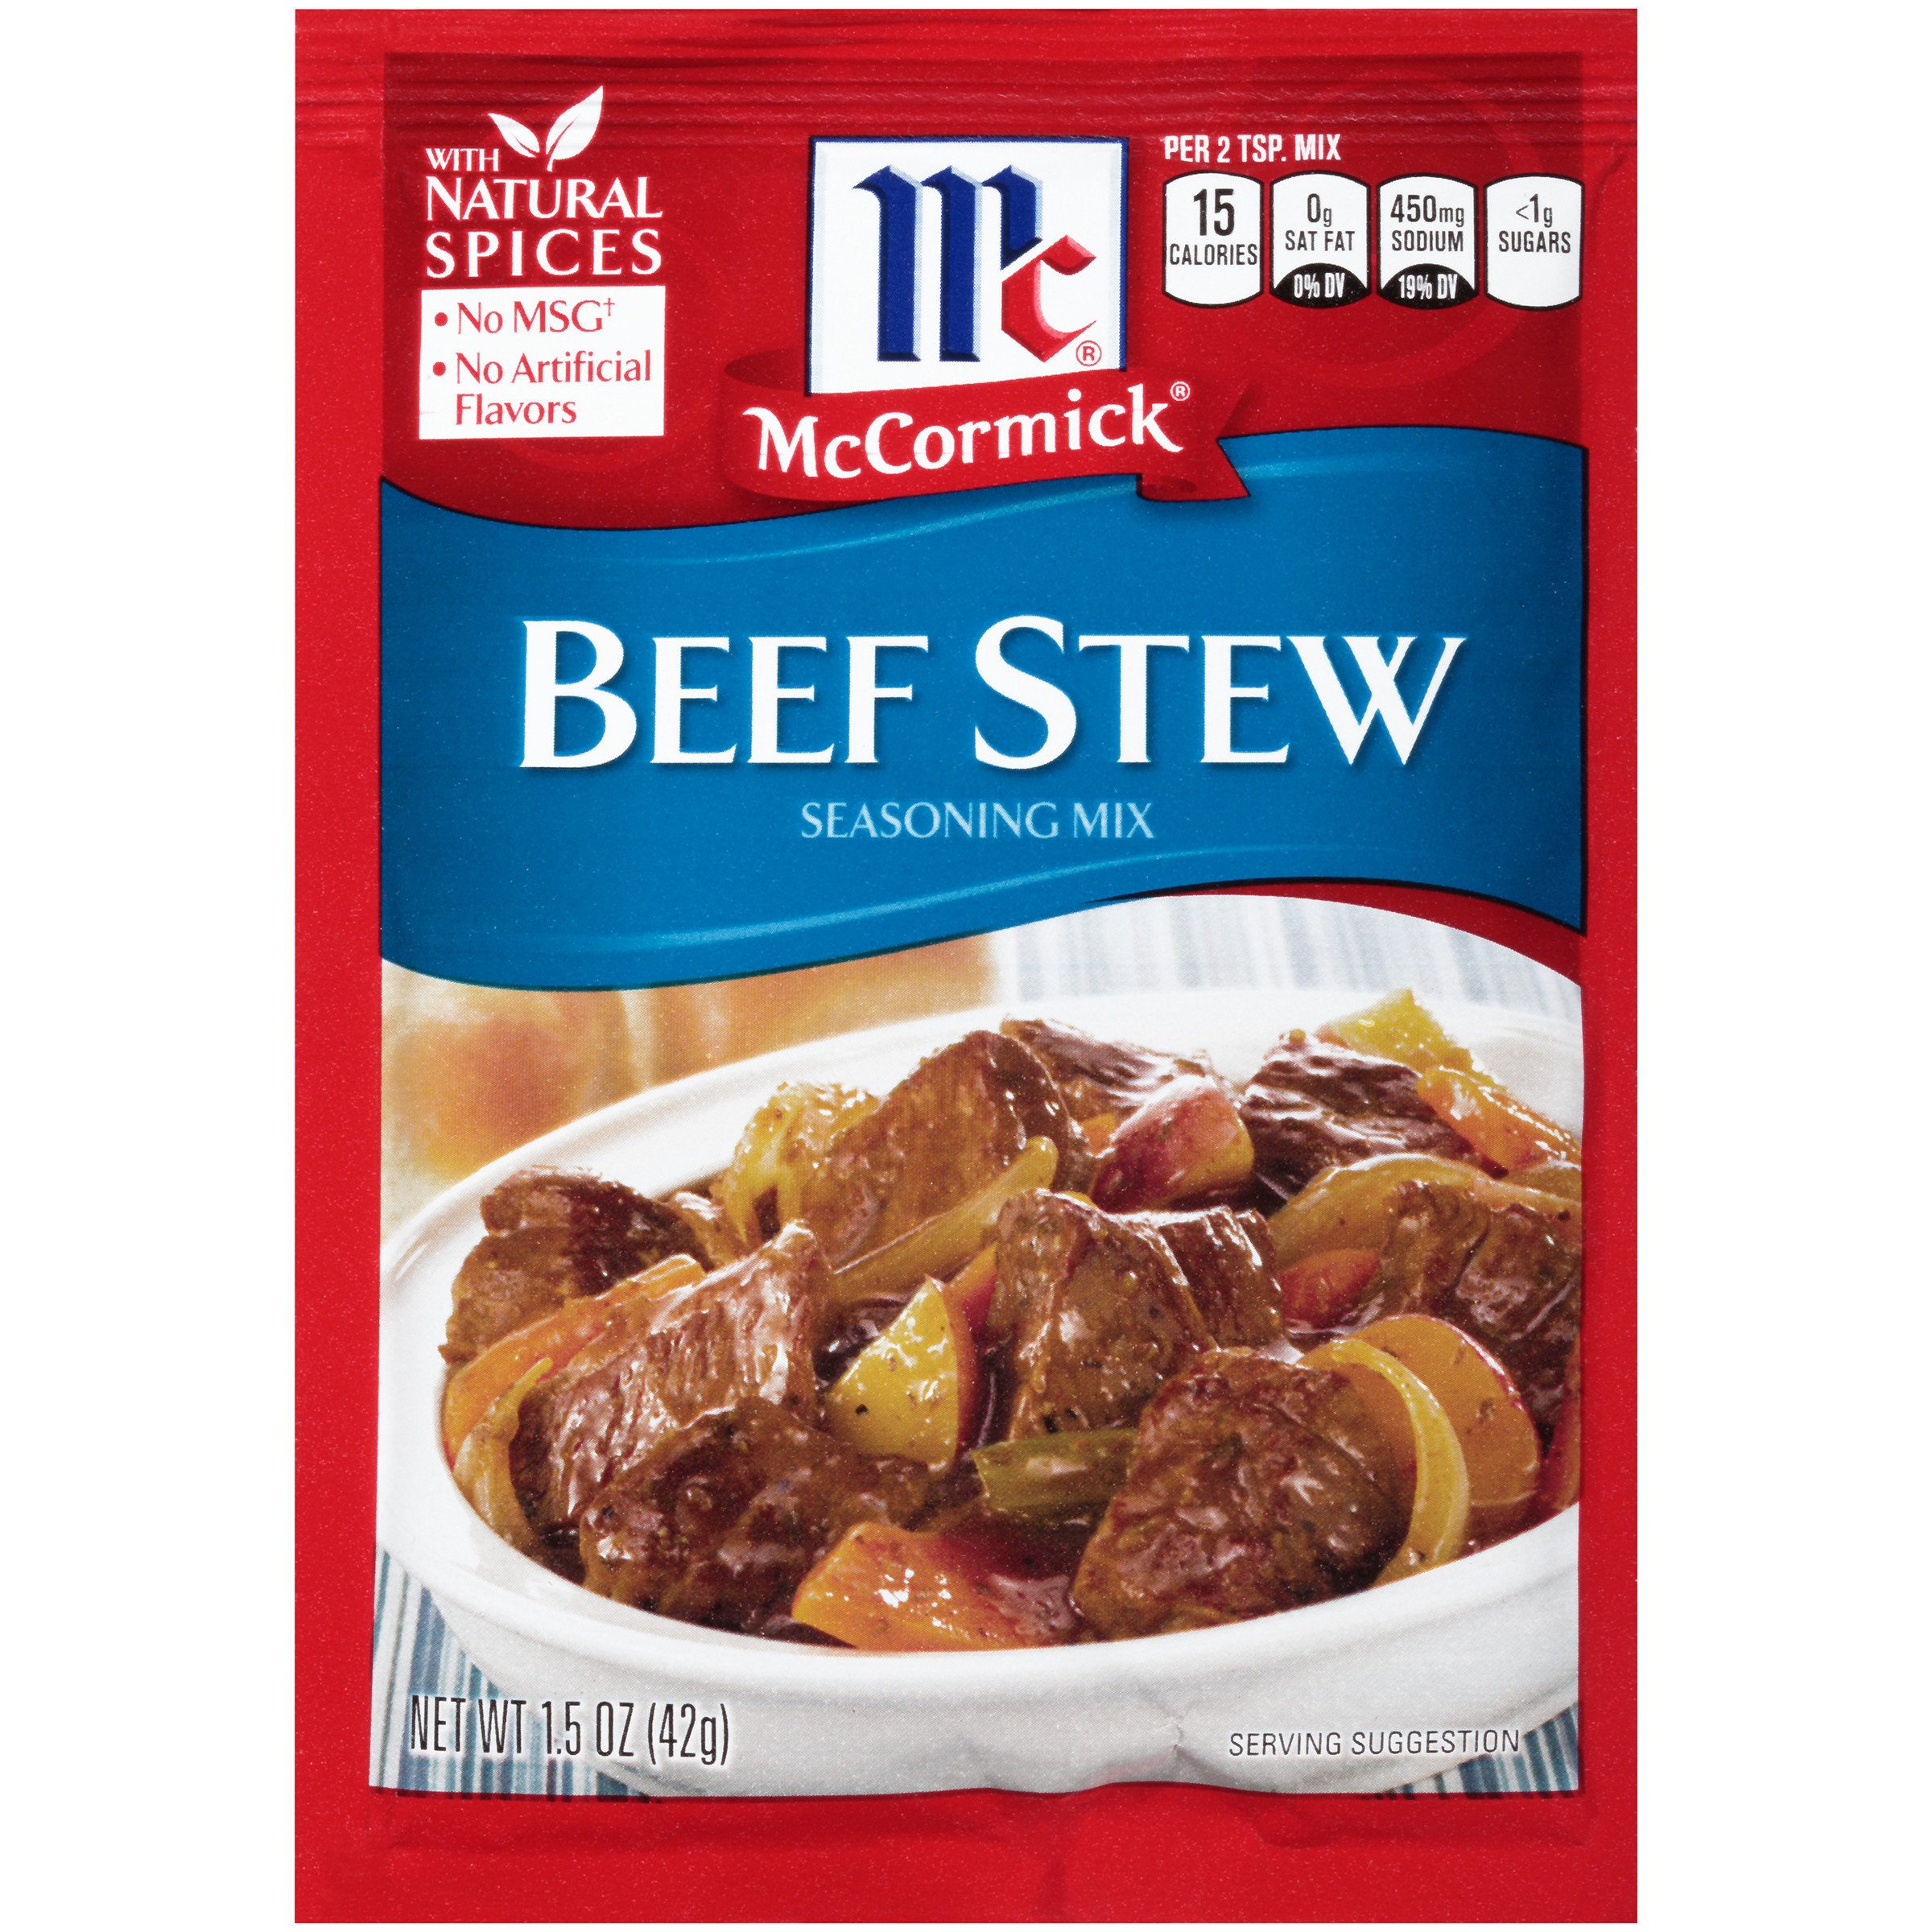 McCormick Beef Stew Seasoning Mix, 1.5 oz